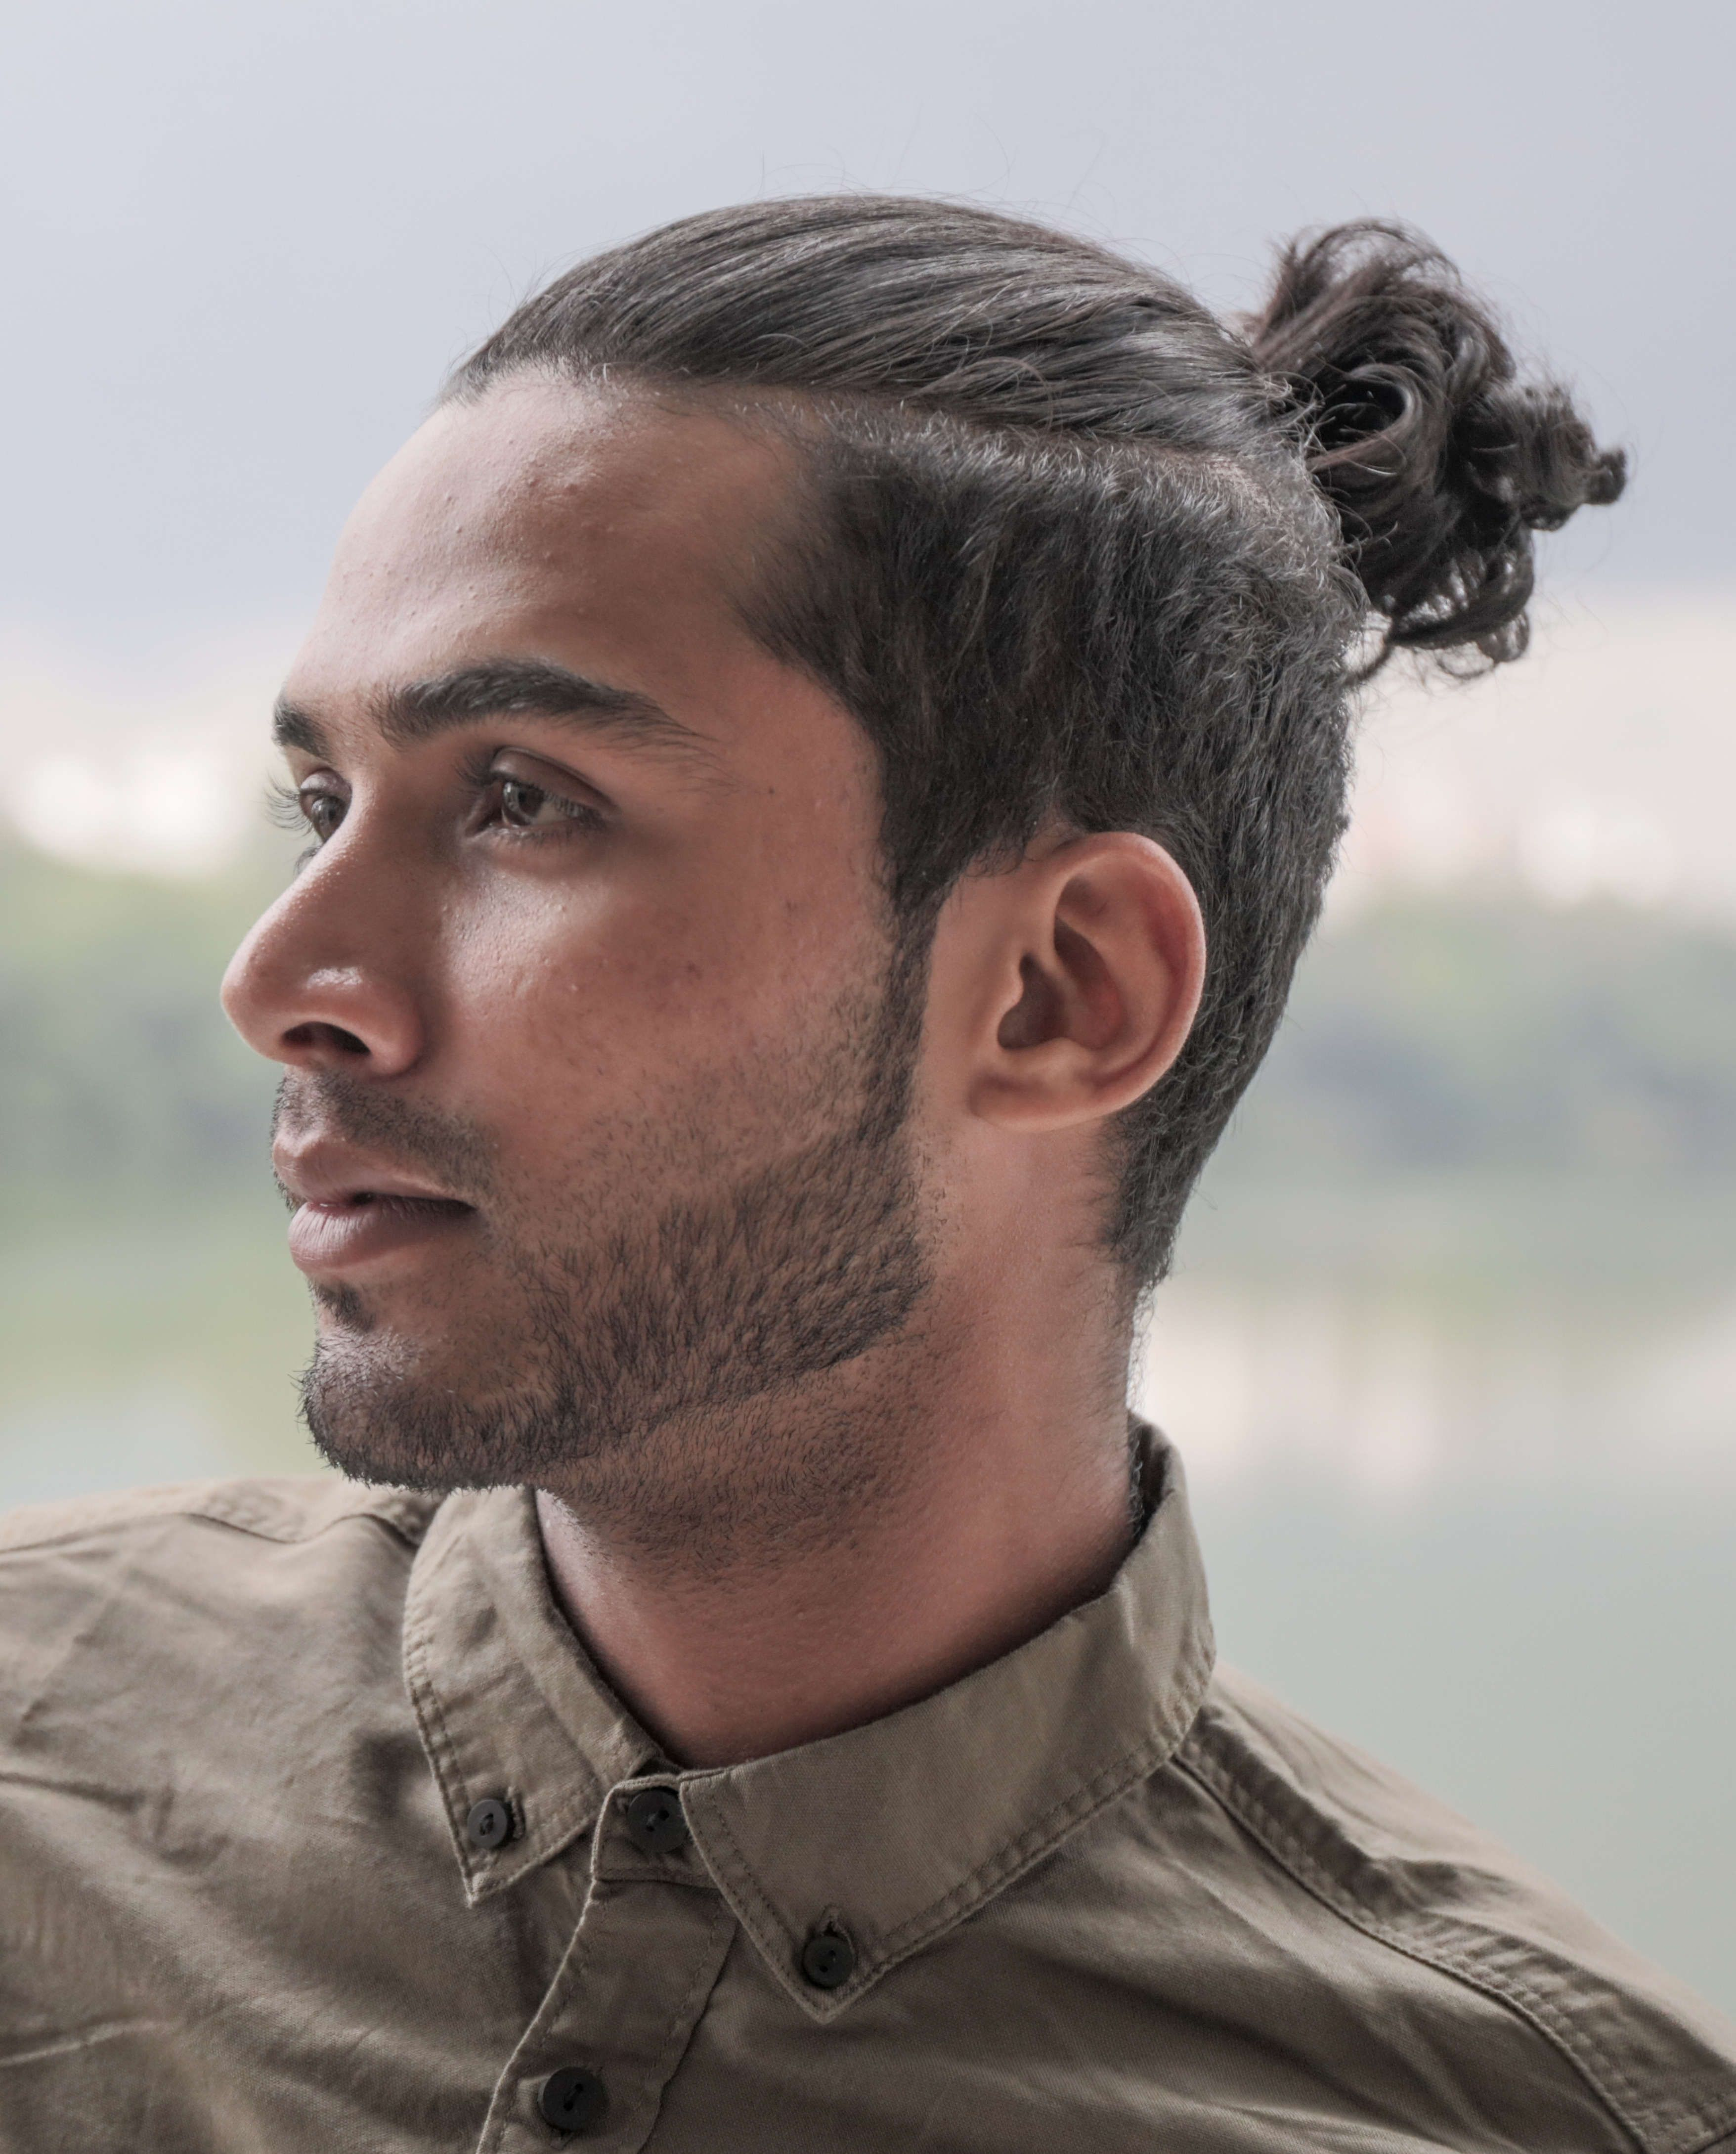 7 Types Of Man Bun Hairstyles Gallery How To Man Bun Hairstyles Man Bun Styles Man Ponytail